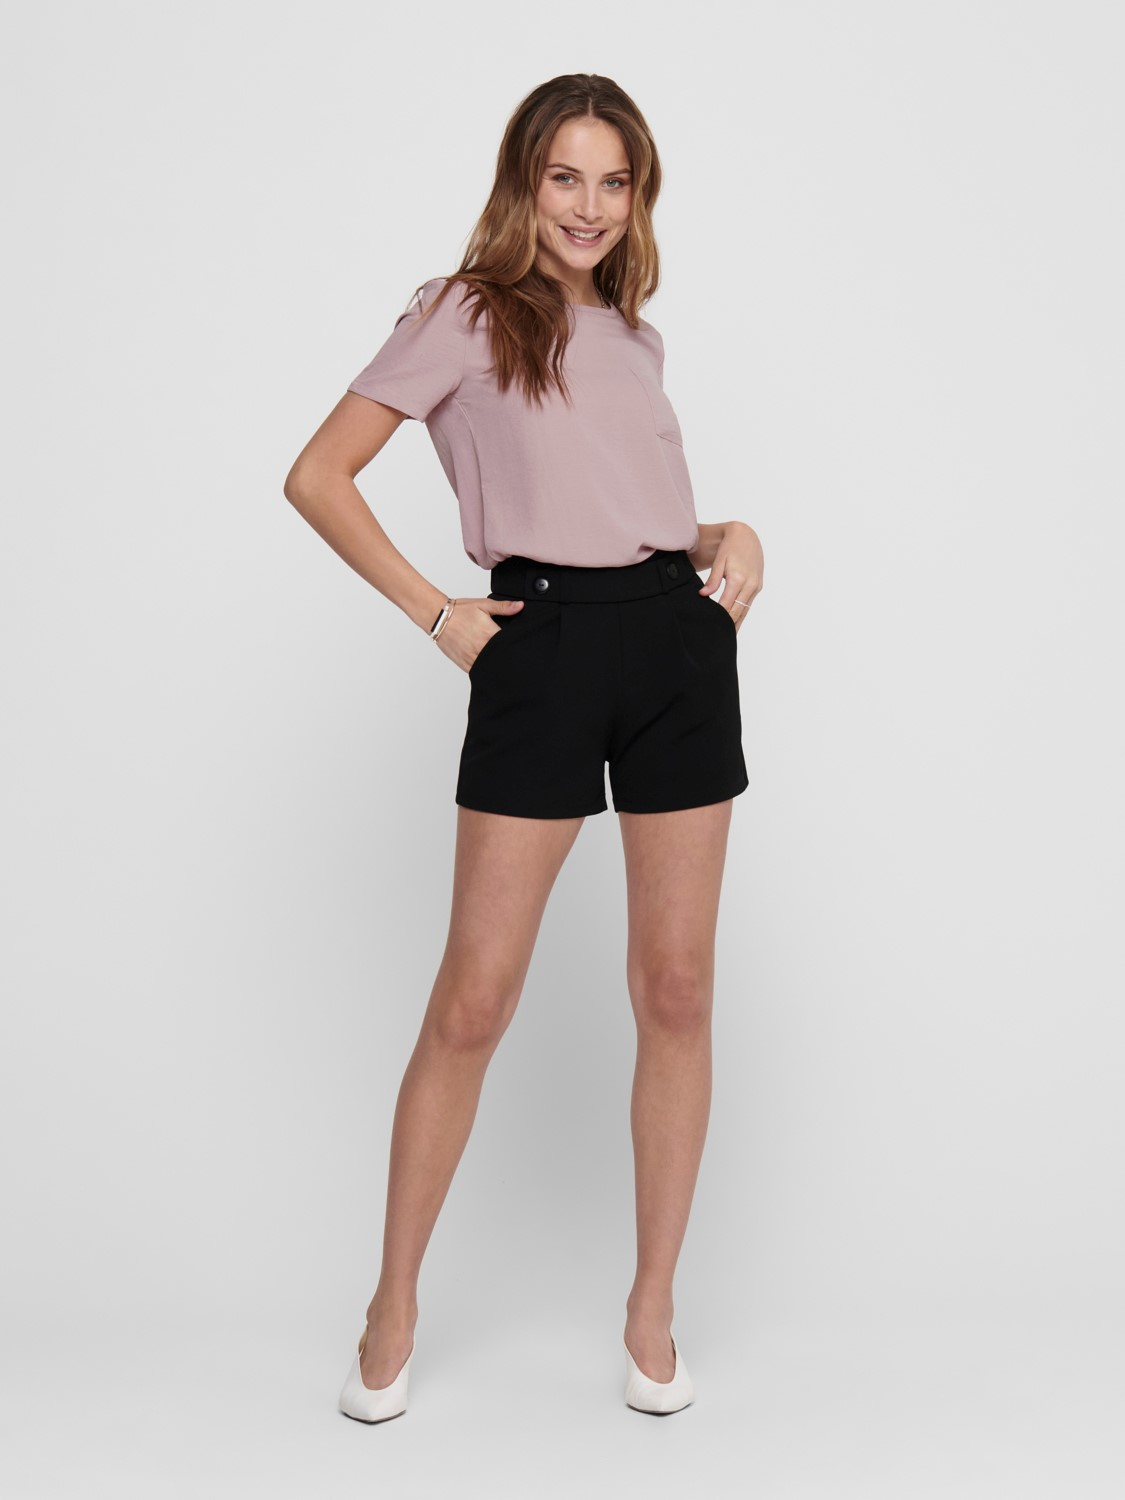 Jdygeggo short black